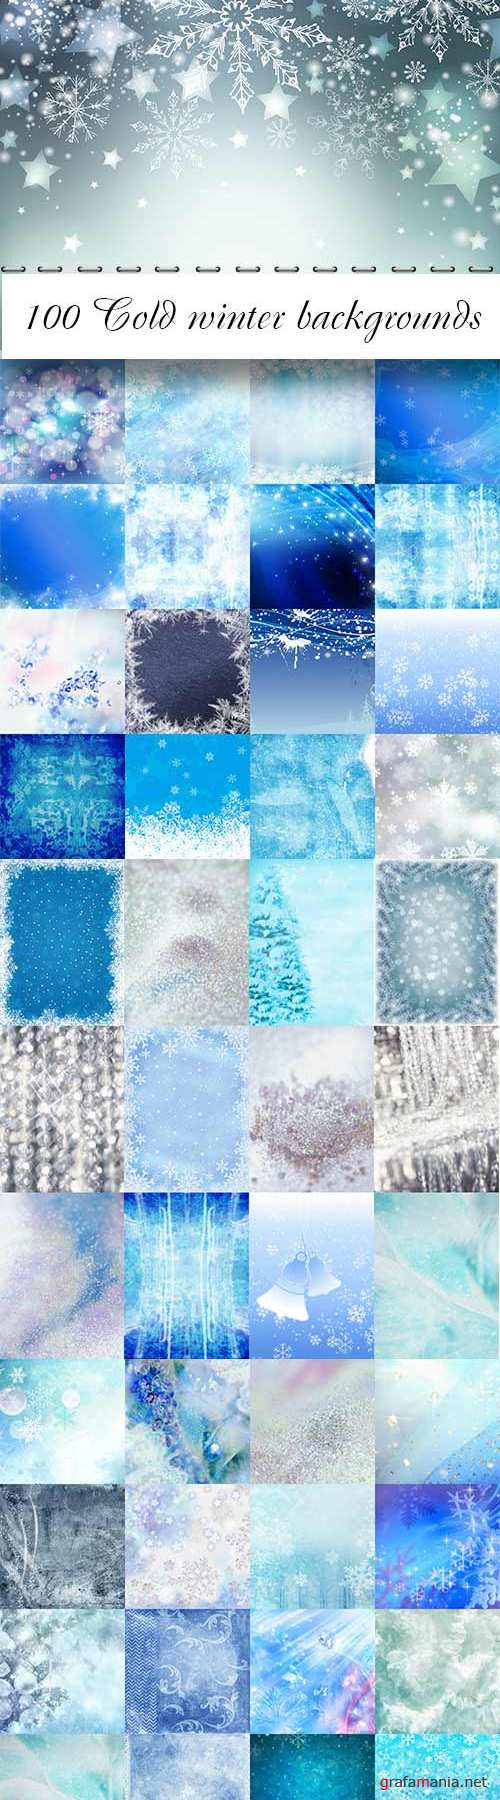 100 Cold winter backgrounds